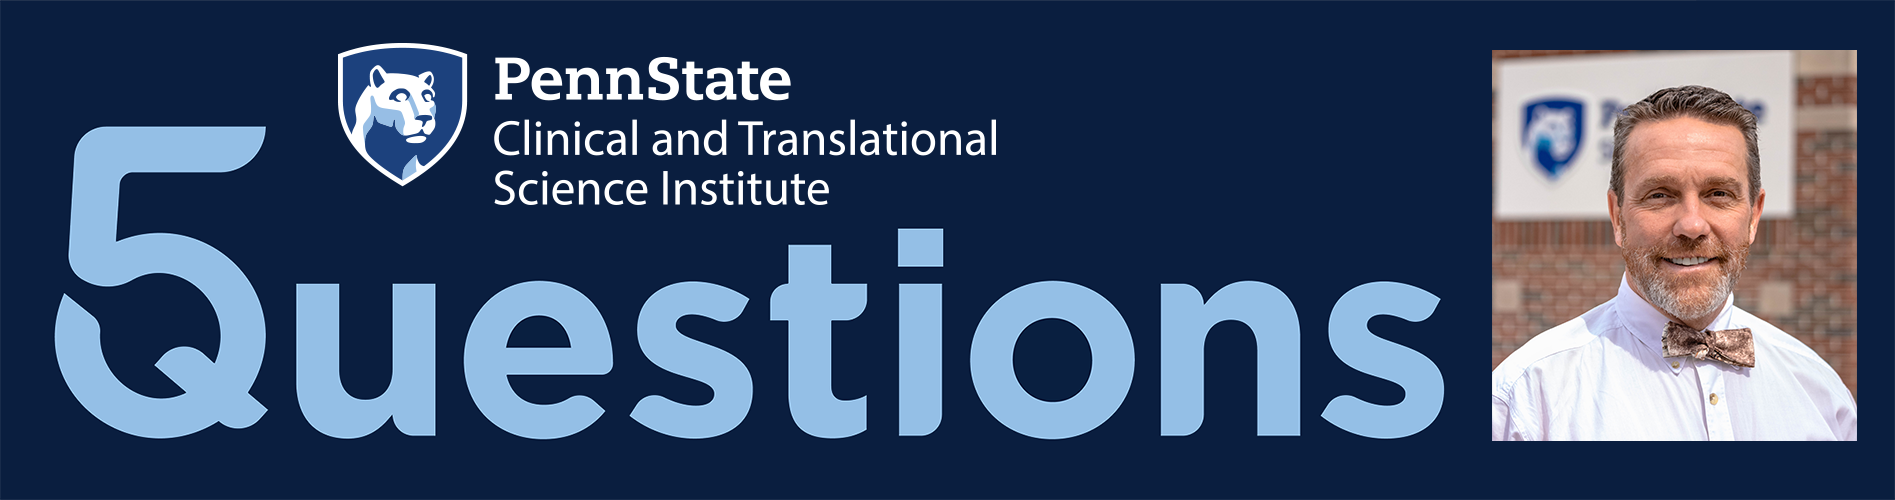 A head-and-shoulders professional photo of Dr. George Garrow in a bowtie is seen with the logo for Penn State Clinical and Translational Science Institute's 5 Questions series.